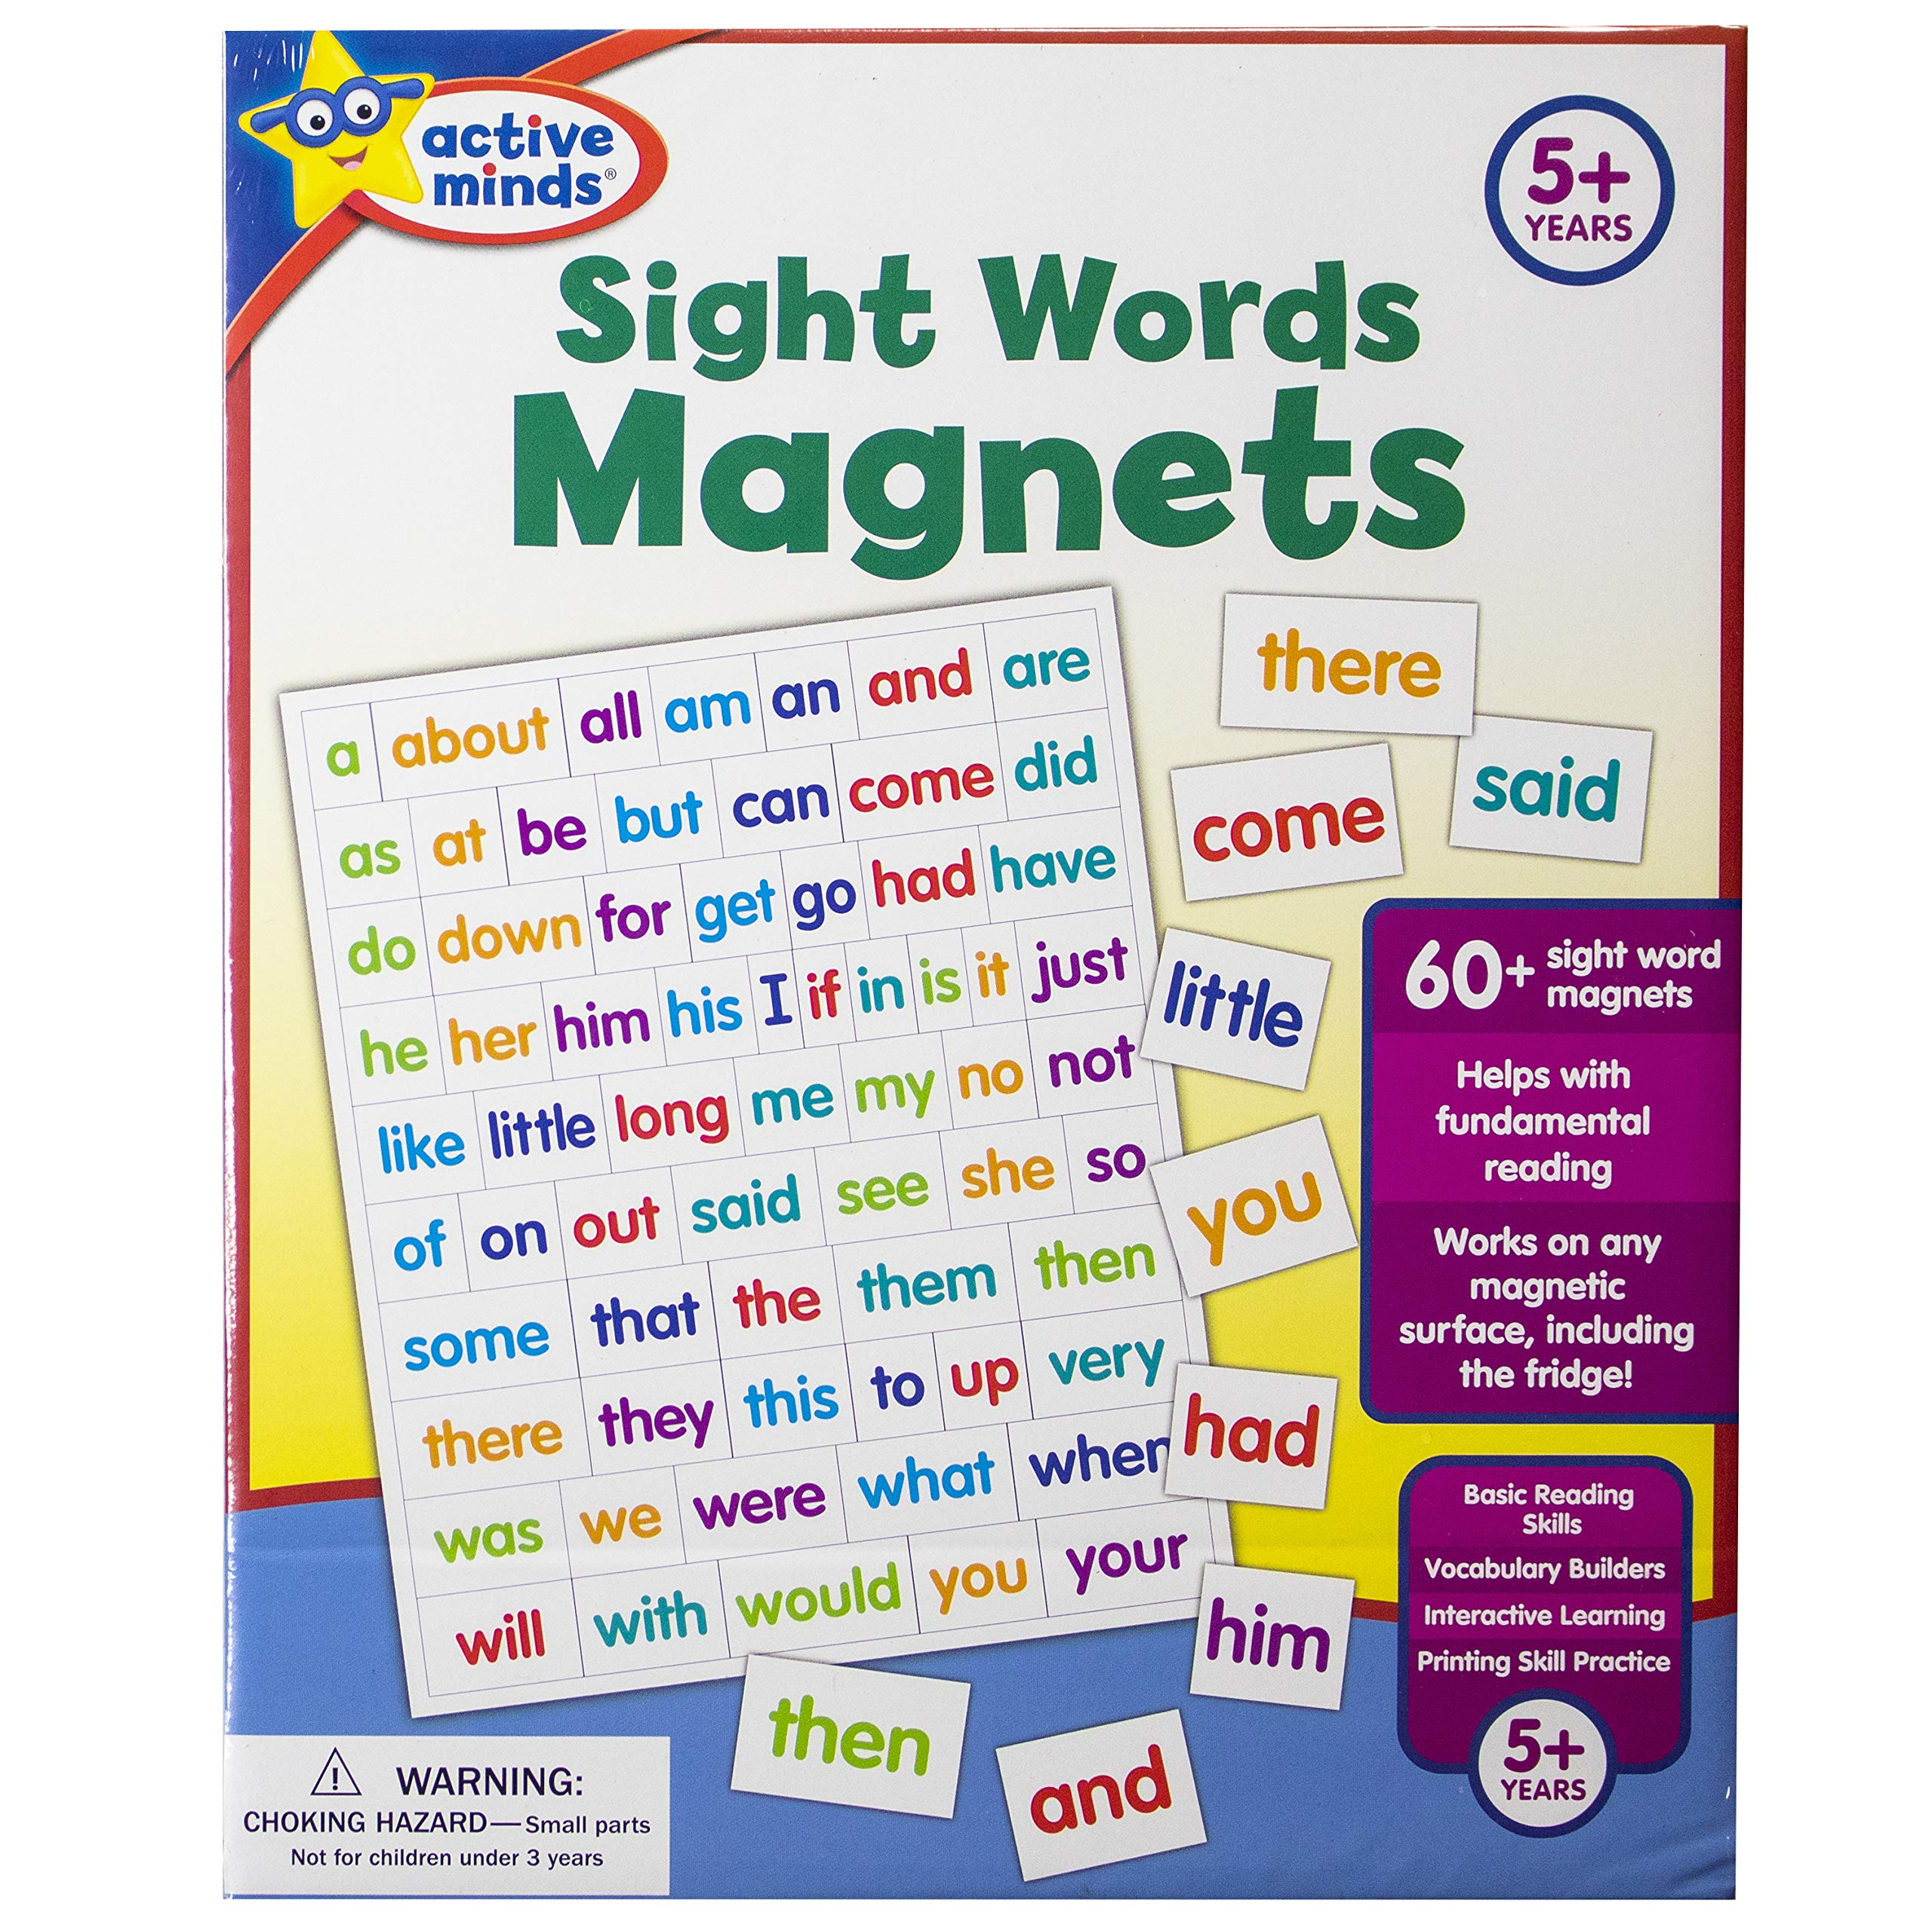 Active Minds Sight Words Magnets Learn And Practice Language Building Skills Needed For Reading Ages 5 And Up Edited By Sequoia Children S Publishing Edited By Sequoia Children S Publishing Edited By Sequoia